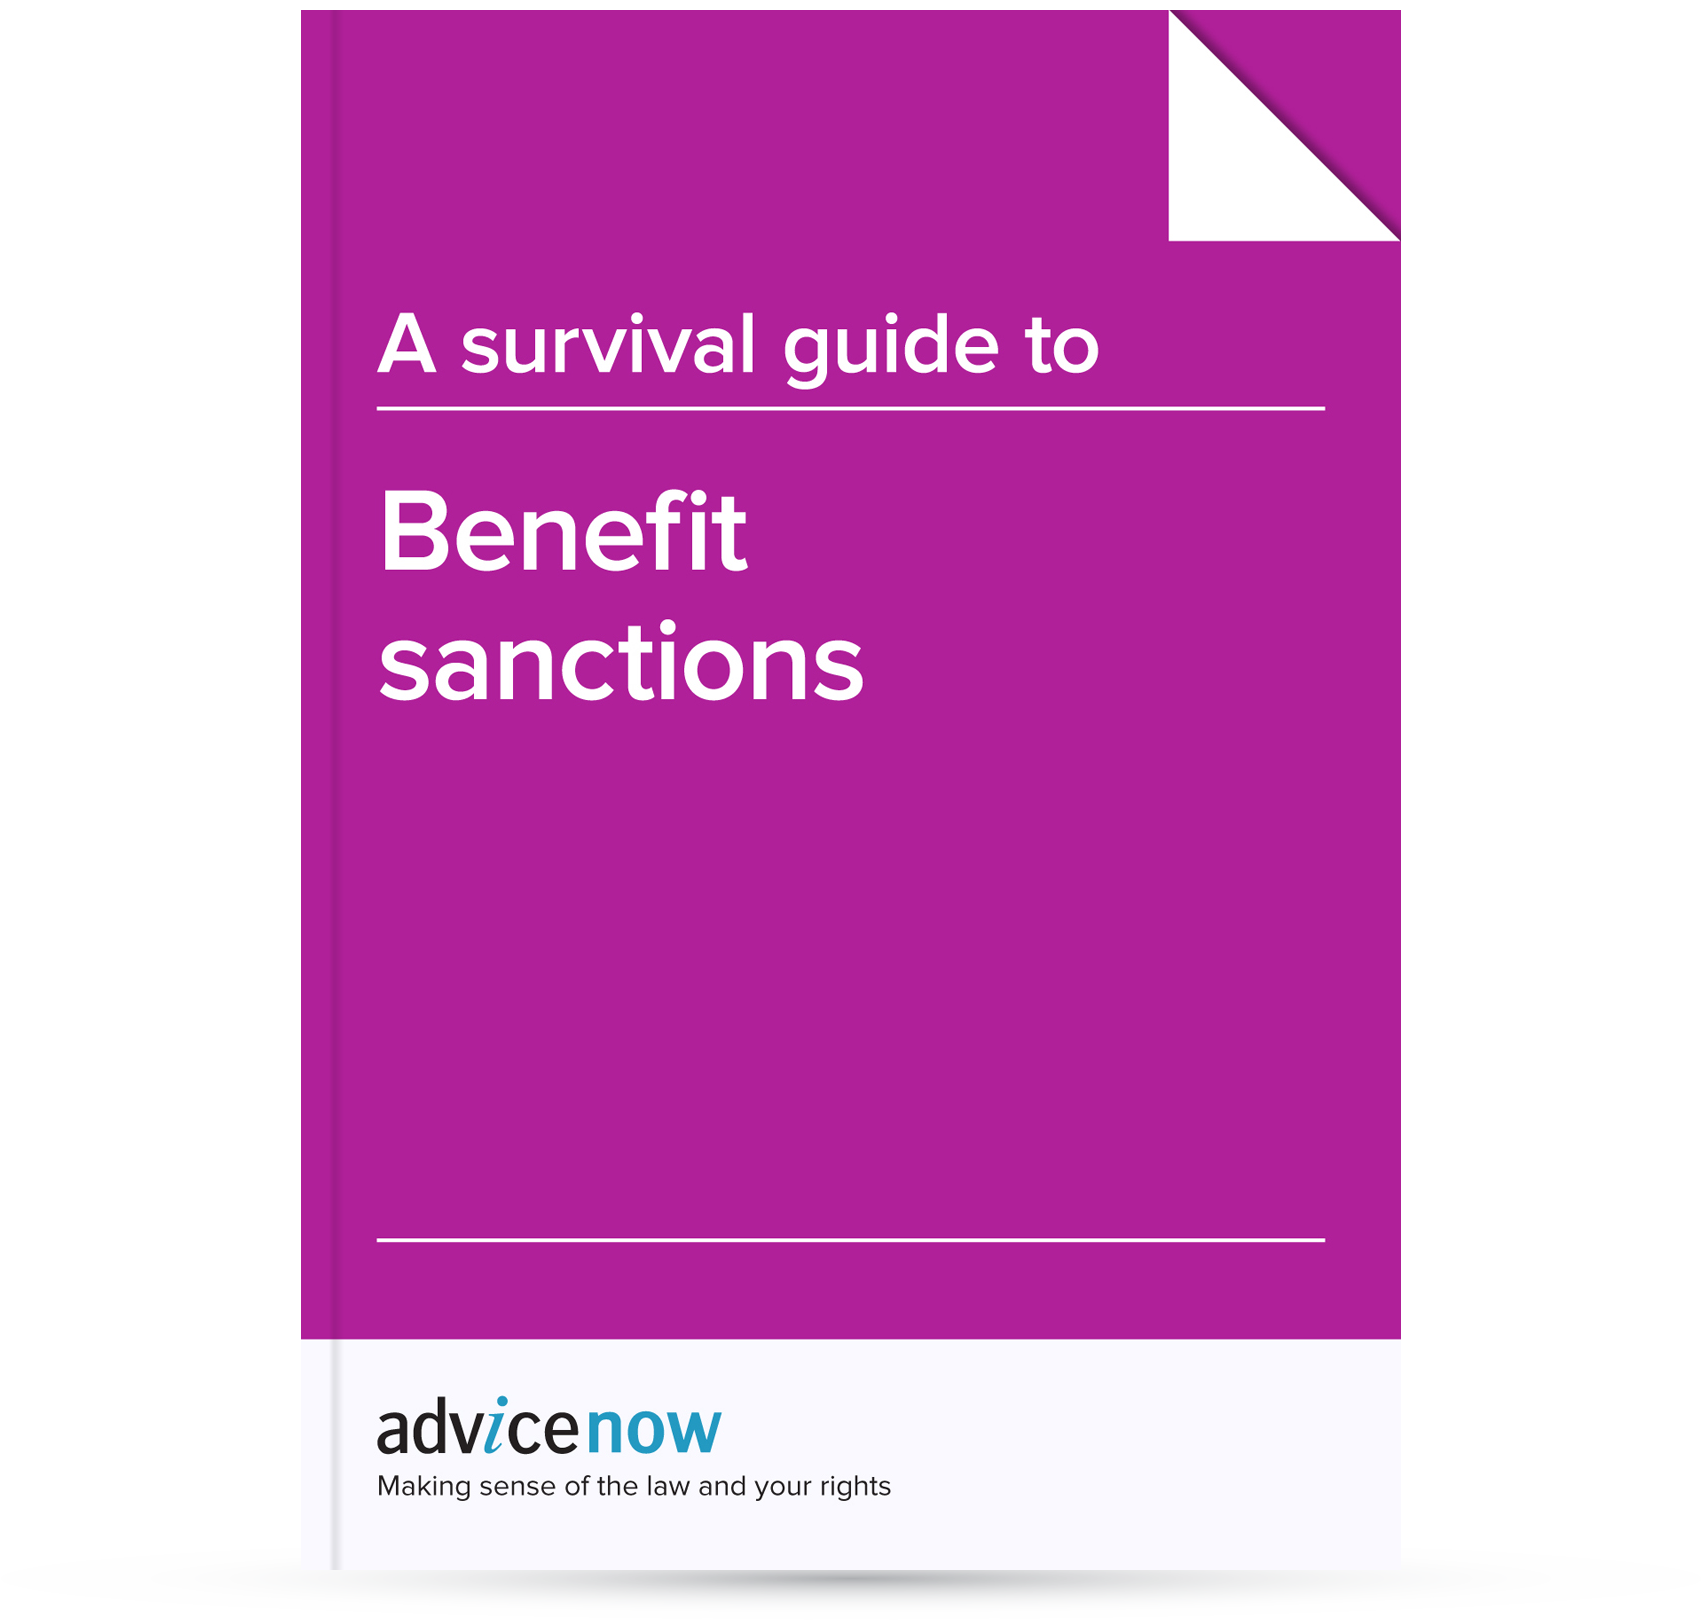 A survival guide to benefit sanctions | Advicenow